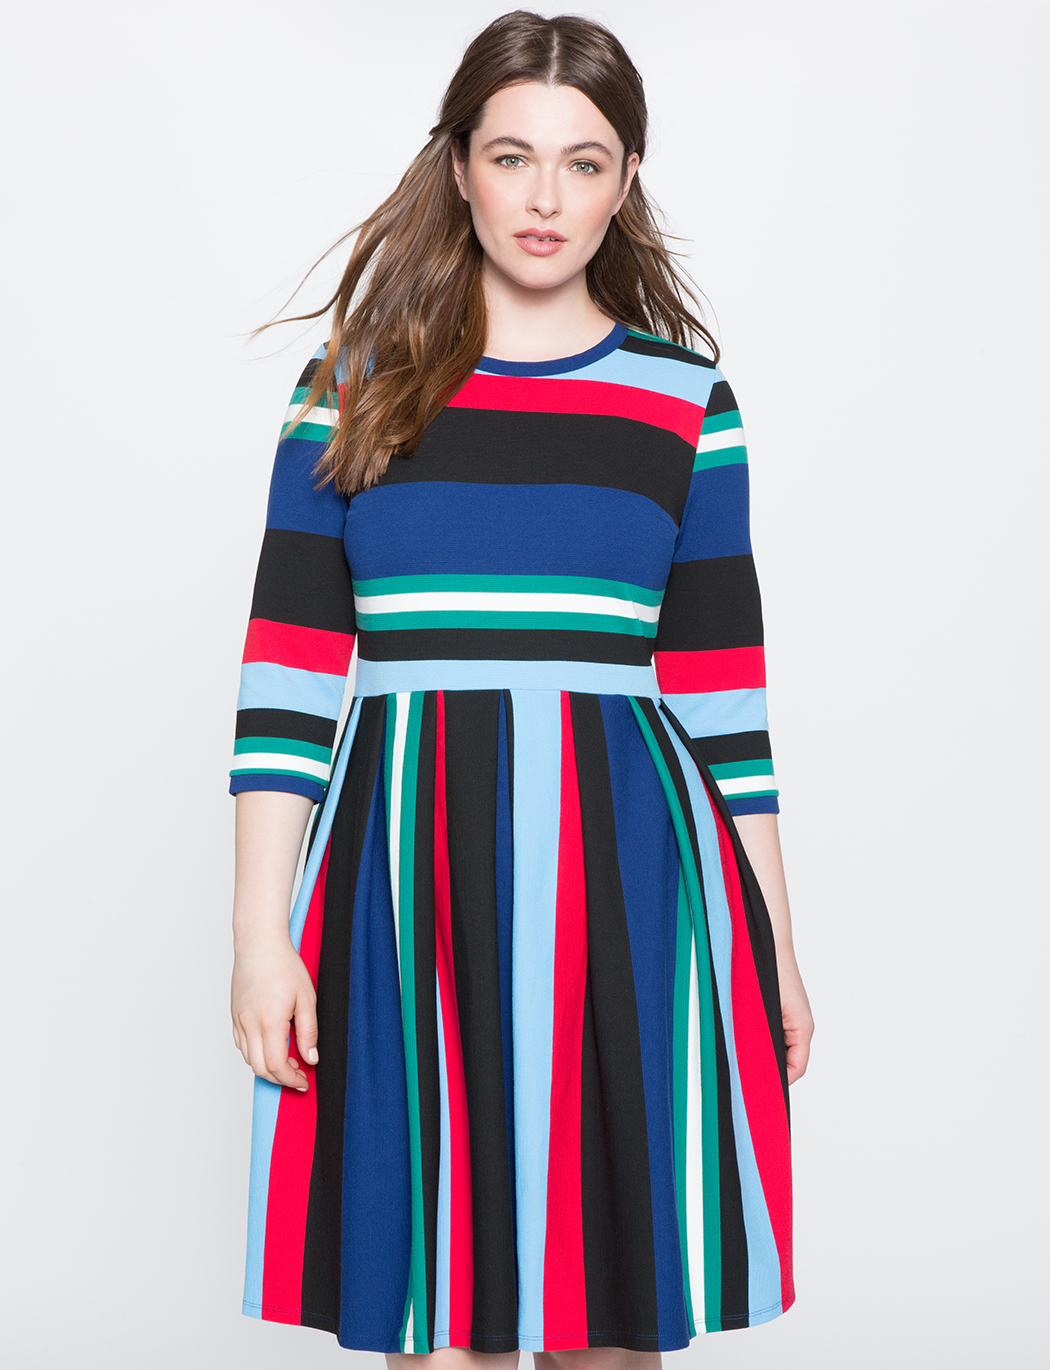 Opposing Striped Knit Dress | Women\'s Plus Size Dresses | ELOQUII